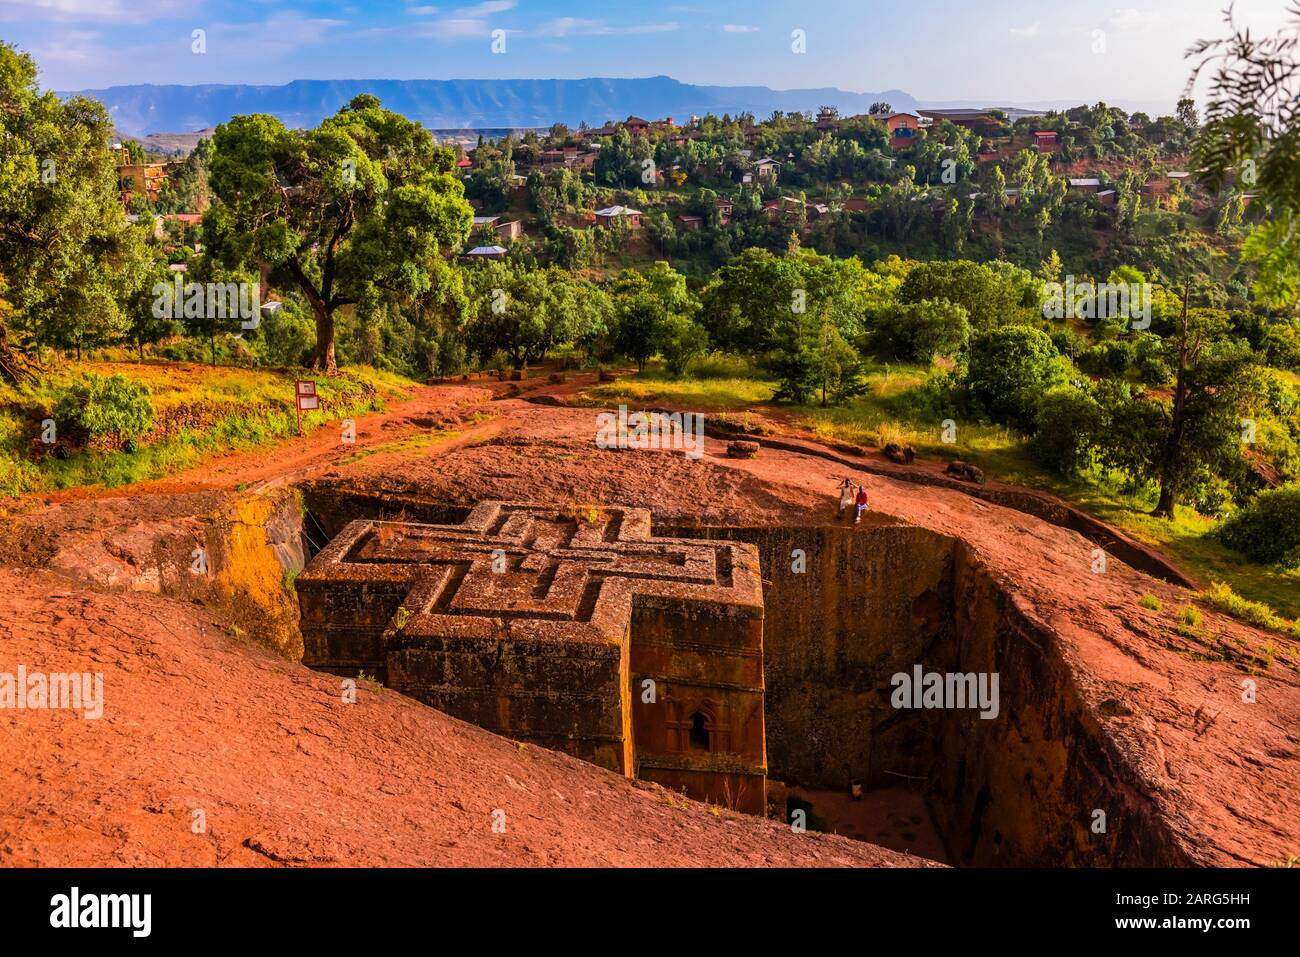 Beta Giyorgis (St. George's Church), Lalibela, Ethiopia. It is the best known and last built of the eleven rock-hewn monolithic churches in Lalibela. Stock Photo